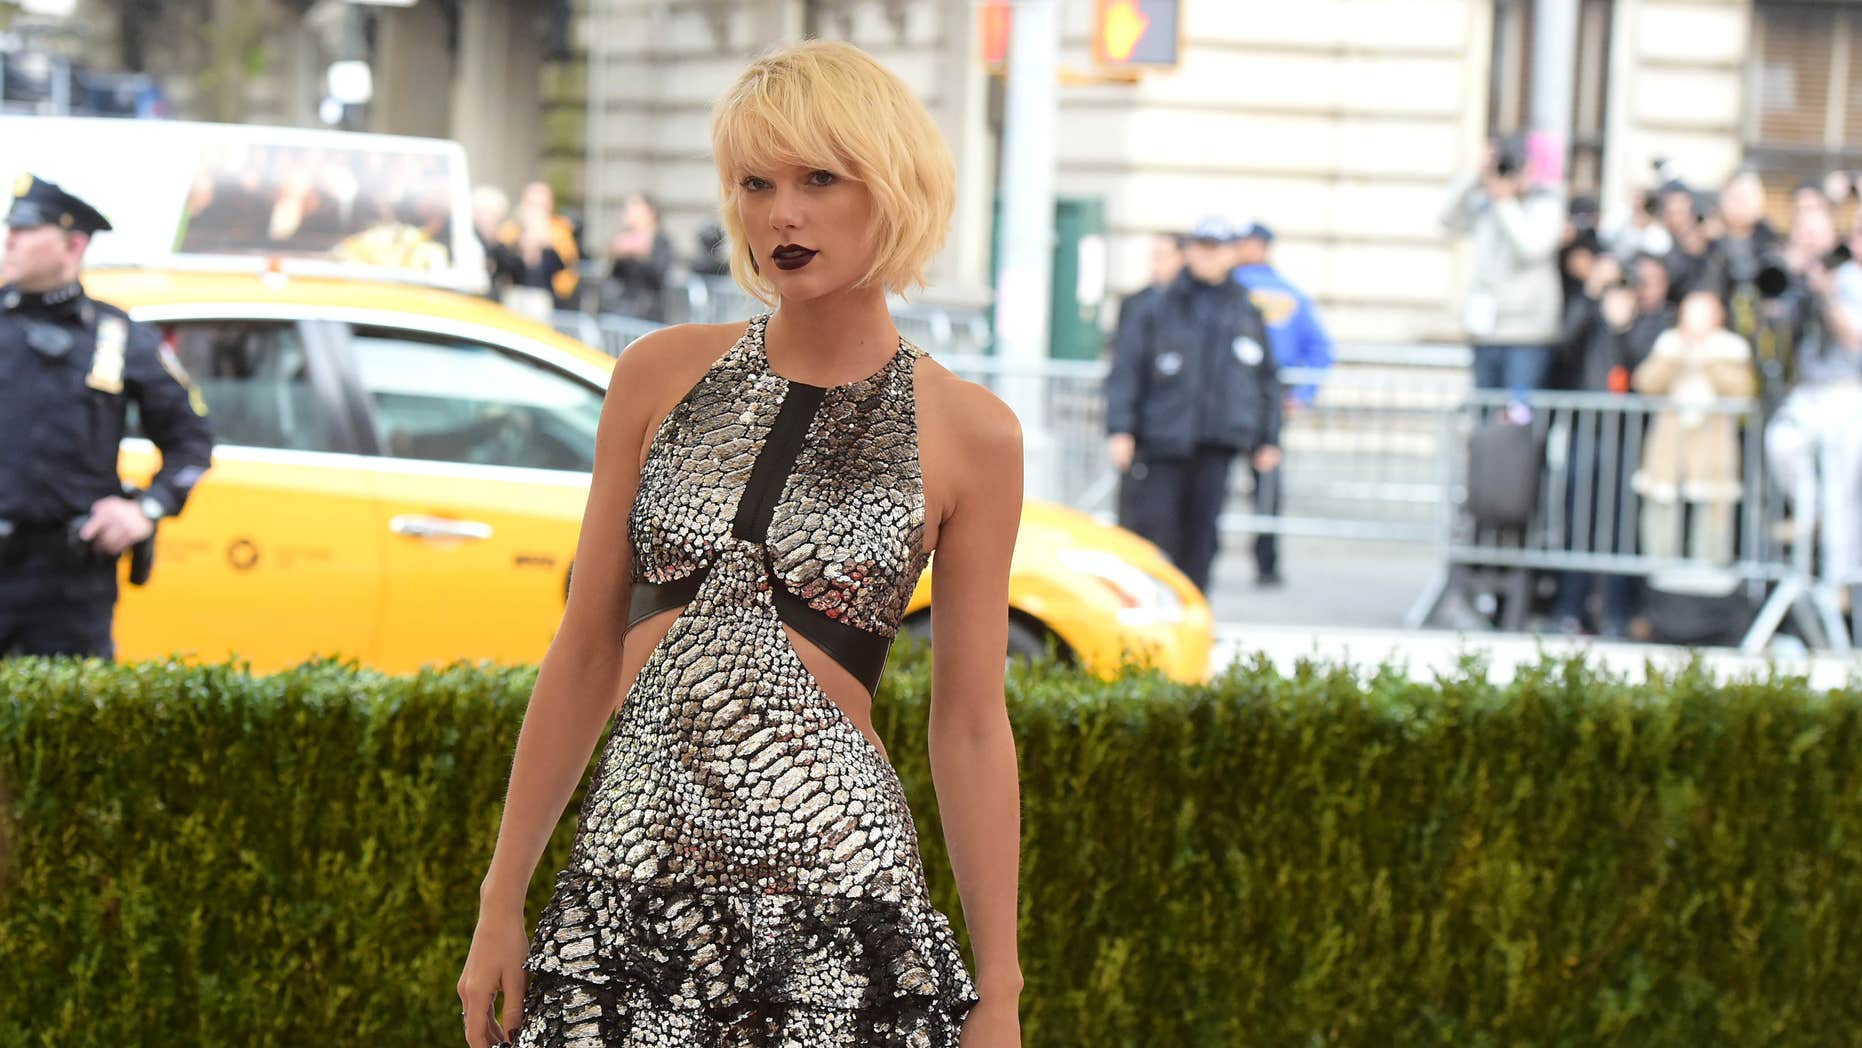 """FILE - In this Monday, May 2, 2016 file photo, Taylor Swift arrives at The Metropolitan Museum of Art Costume Institute Benefit Gala, celebrating the opening of """"Manus x Machina: Fashion in an Age of Technology"""" in New York."""